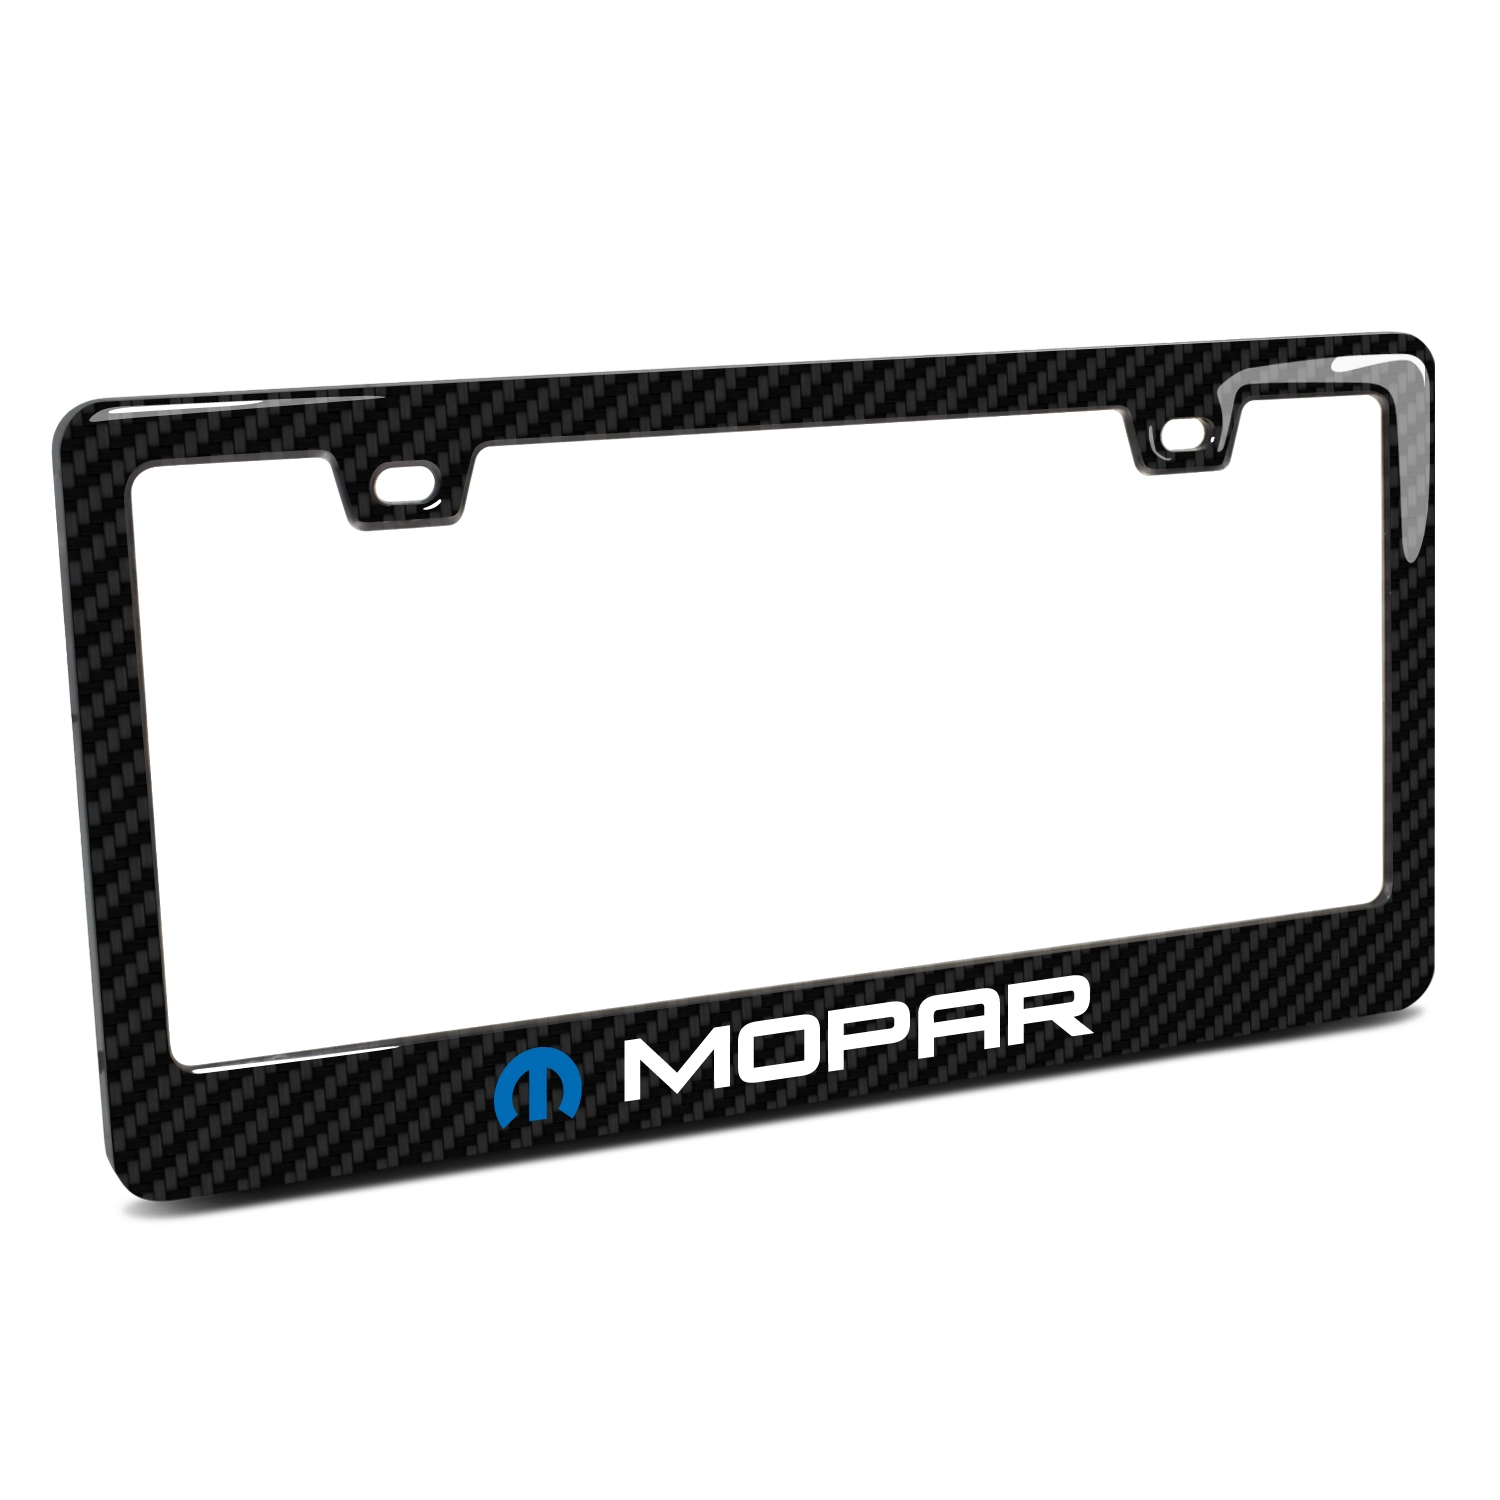 Mopar Black Real 3K Carbon Fiber Finish ABS Plastic License Plate Frame